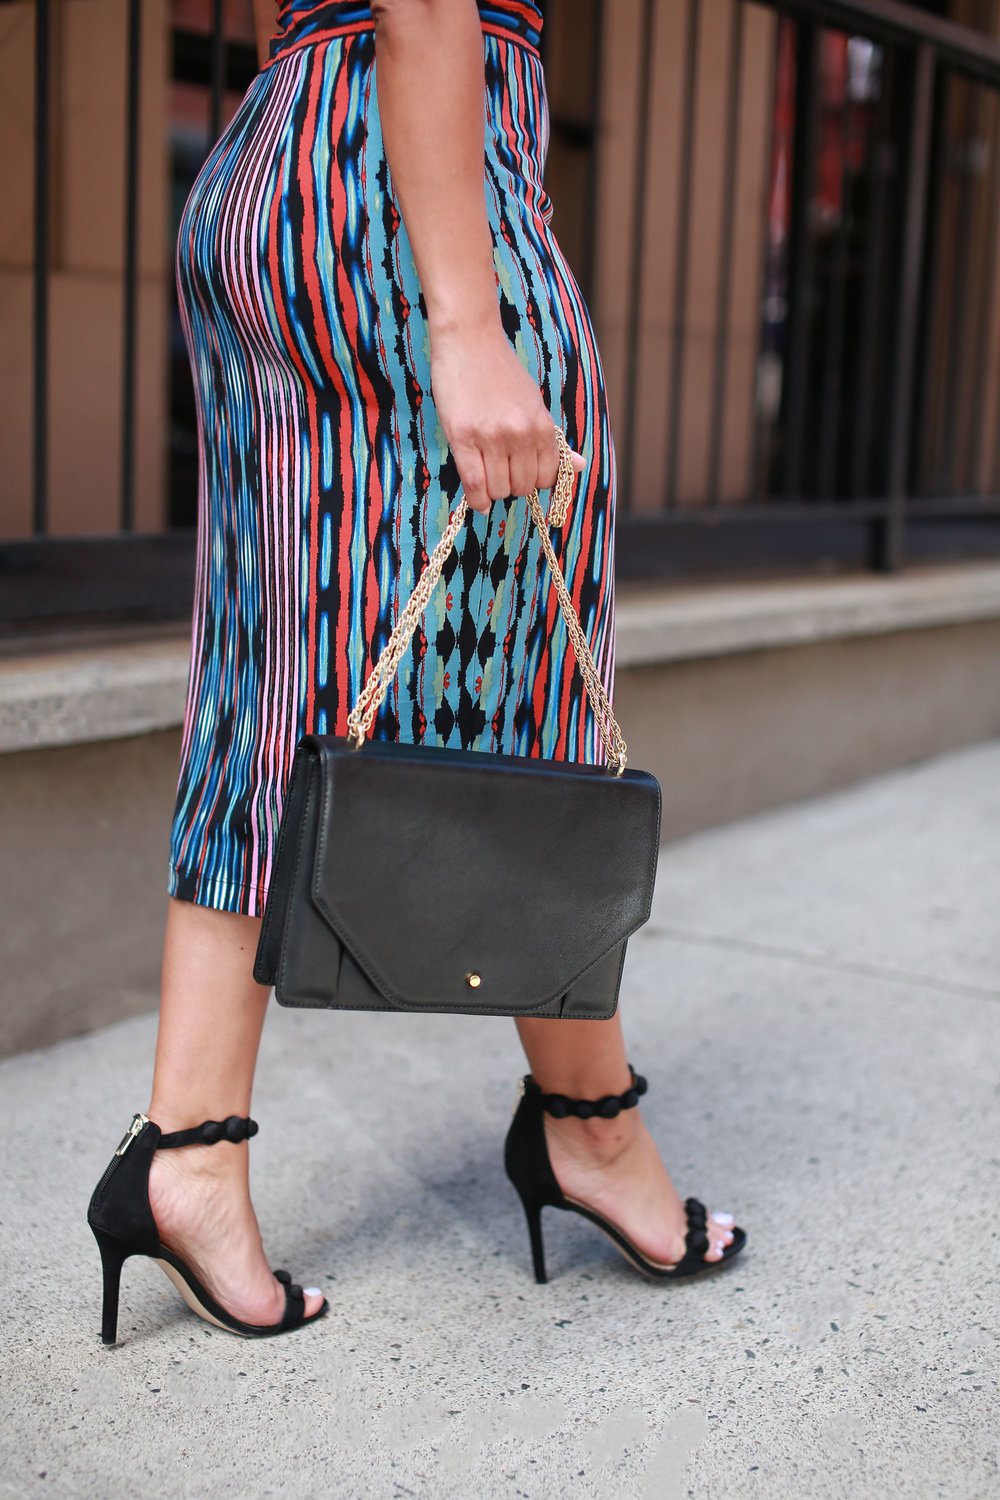 THE SHOES - Pack some sophisti-sexy strappy heels in your bag for a quick transition from your 5pm meeting to 6pm happy hour. We love the fun dimensional detailing on these!